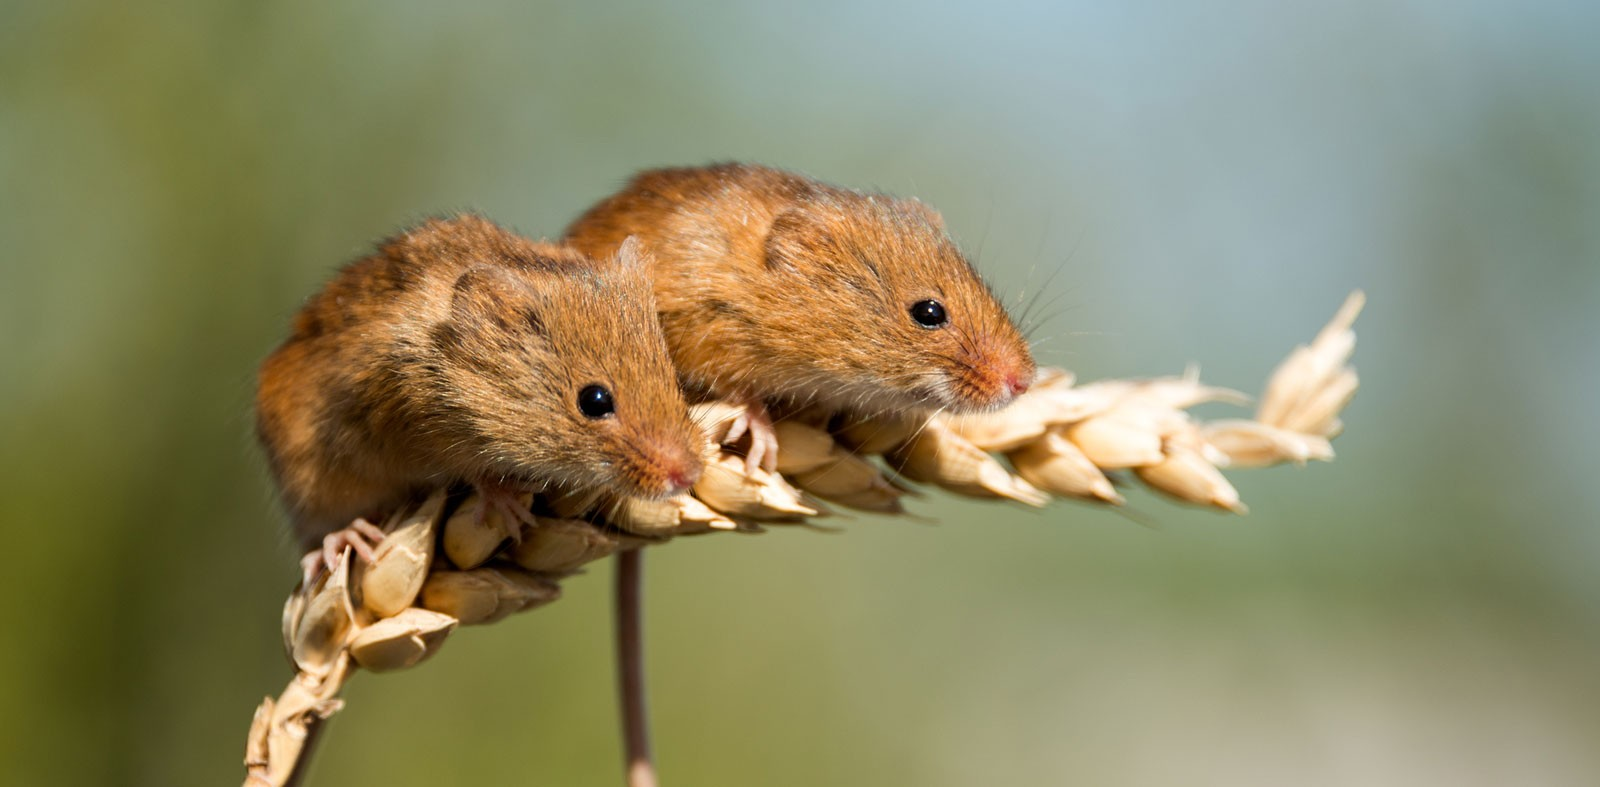 Symbolic Mouse Meaning On Whats Your Sign